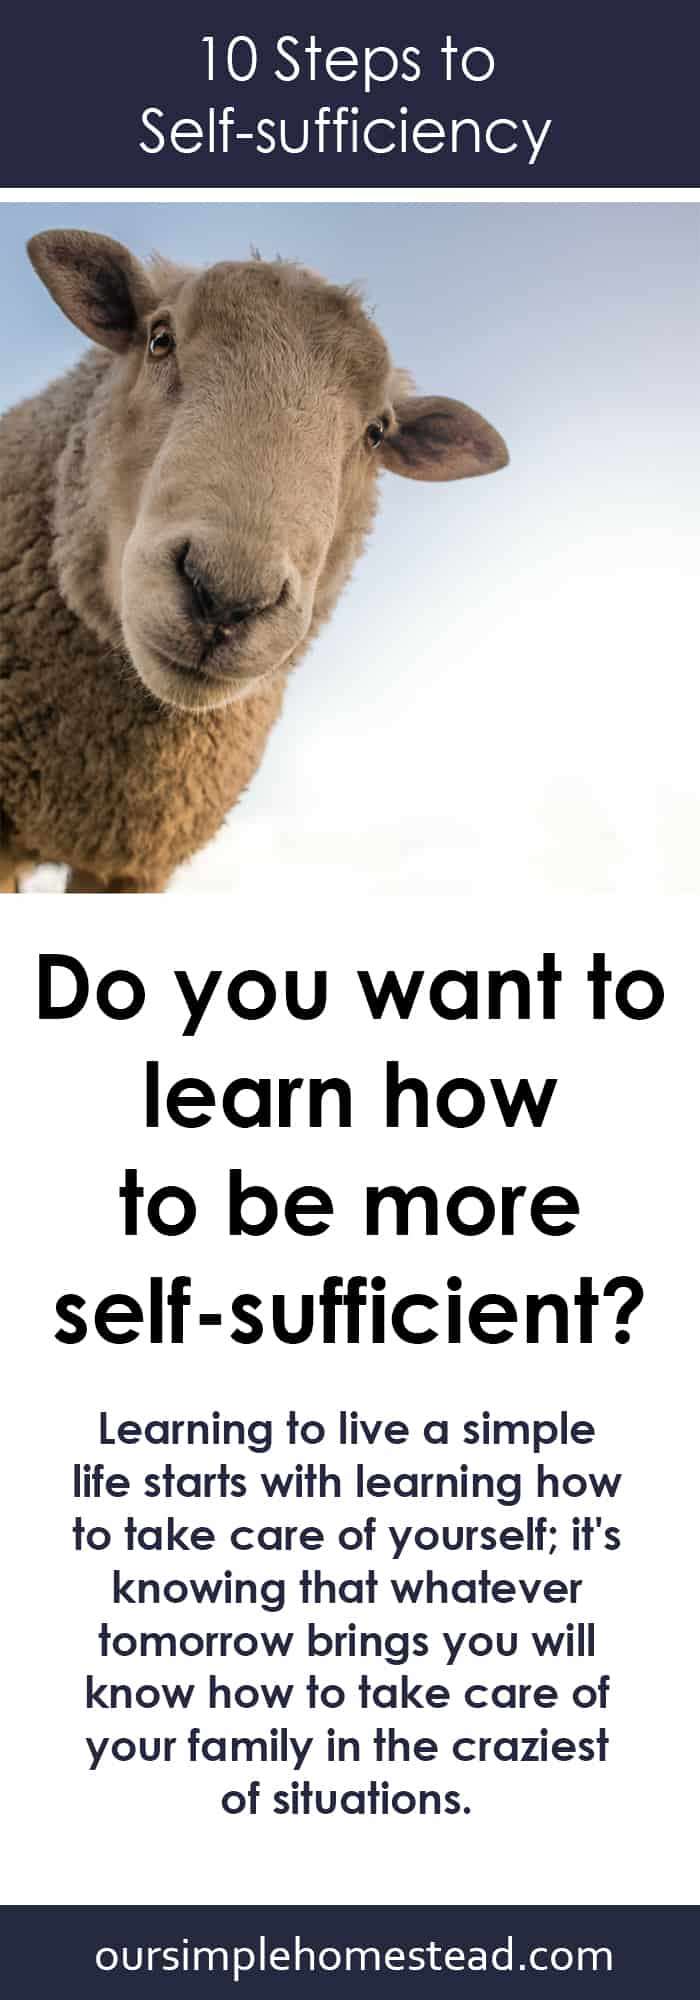 10 Steps for Living a Self-sufficient Lifestyle